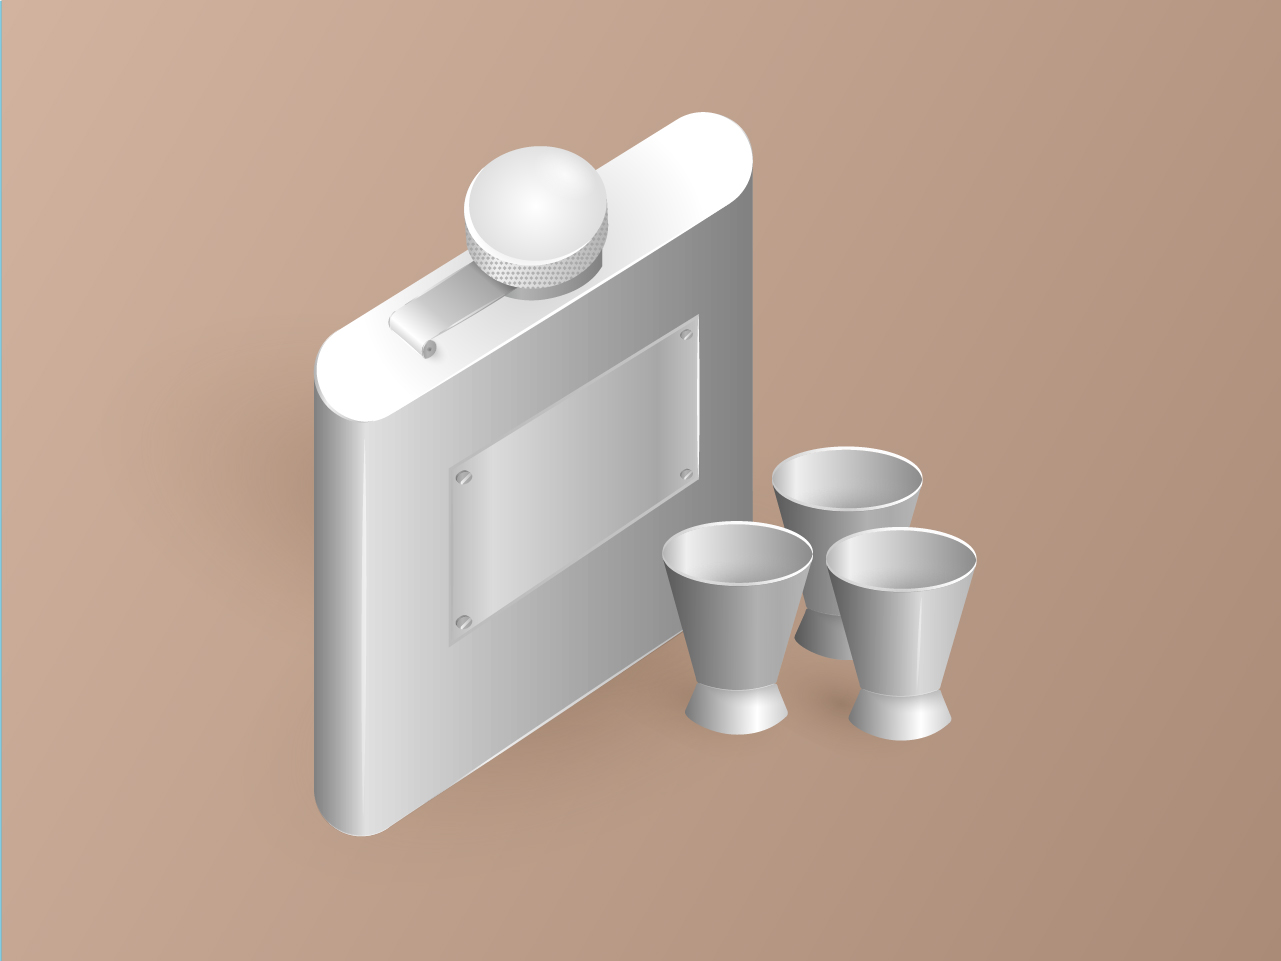 Illustration of a hip flask and measuring glasses